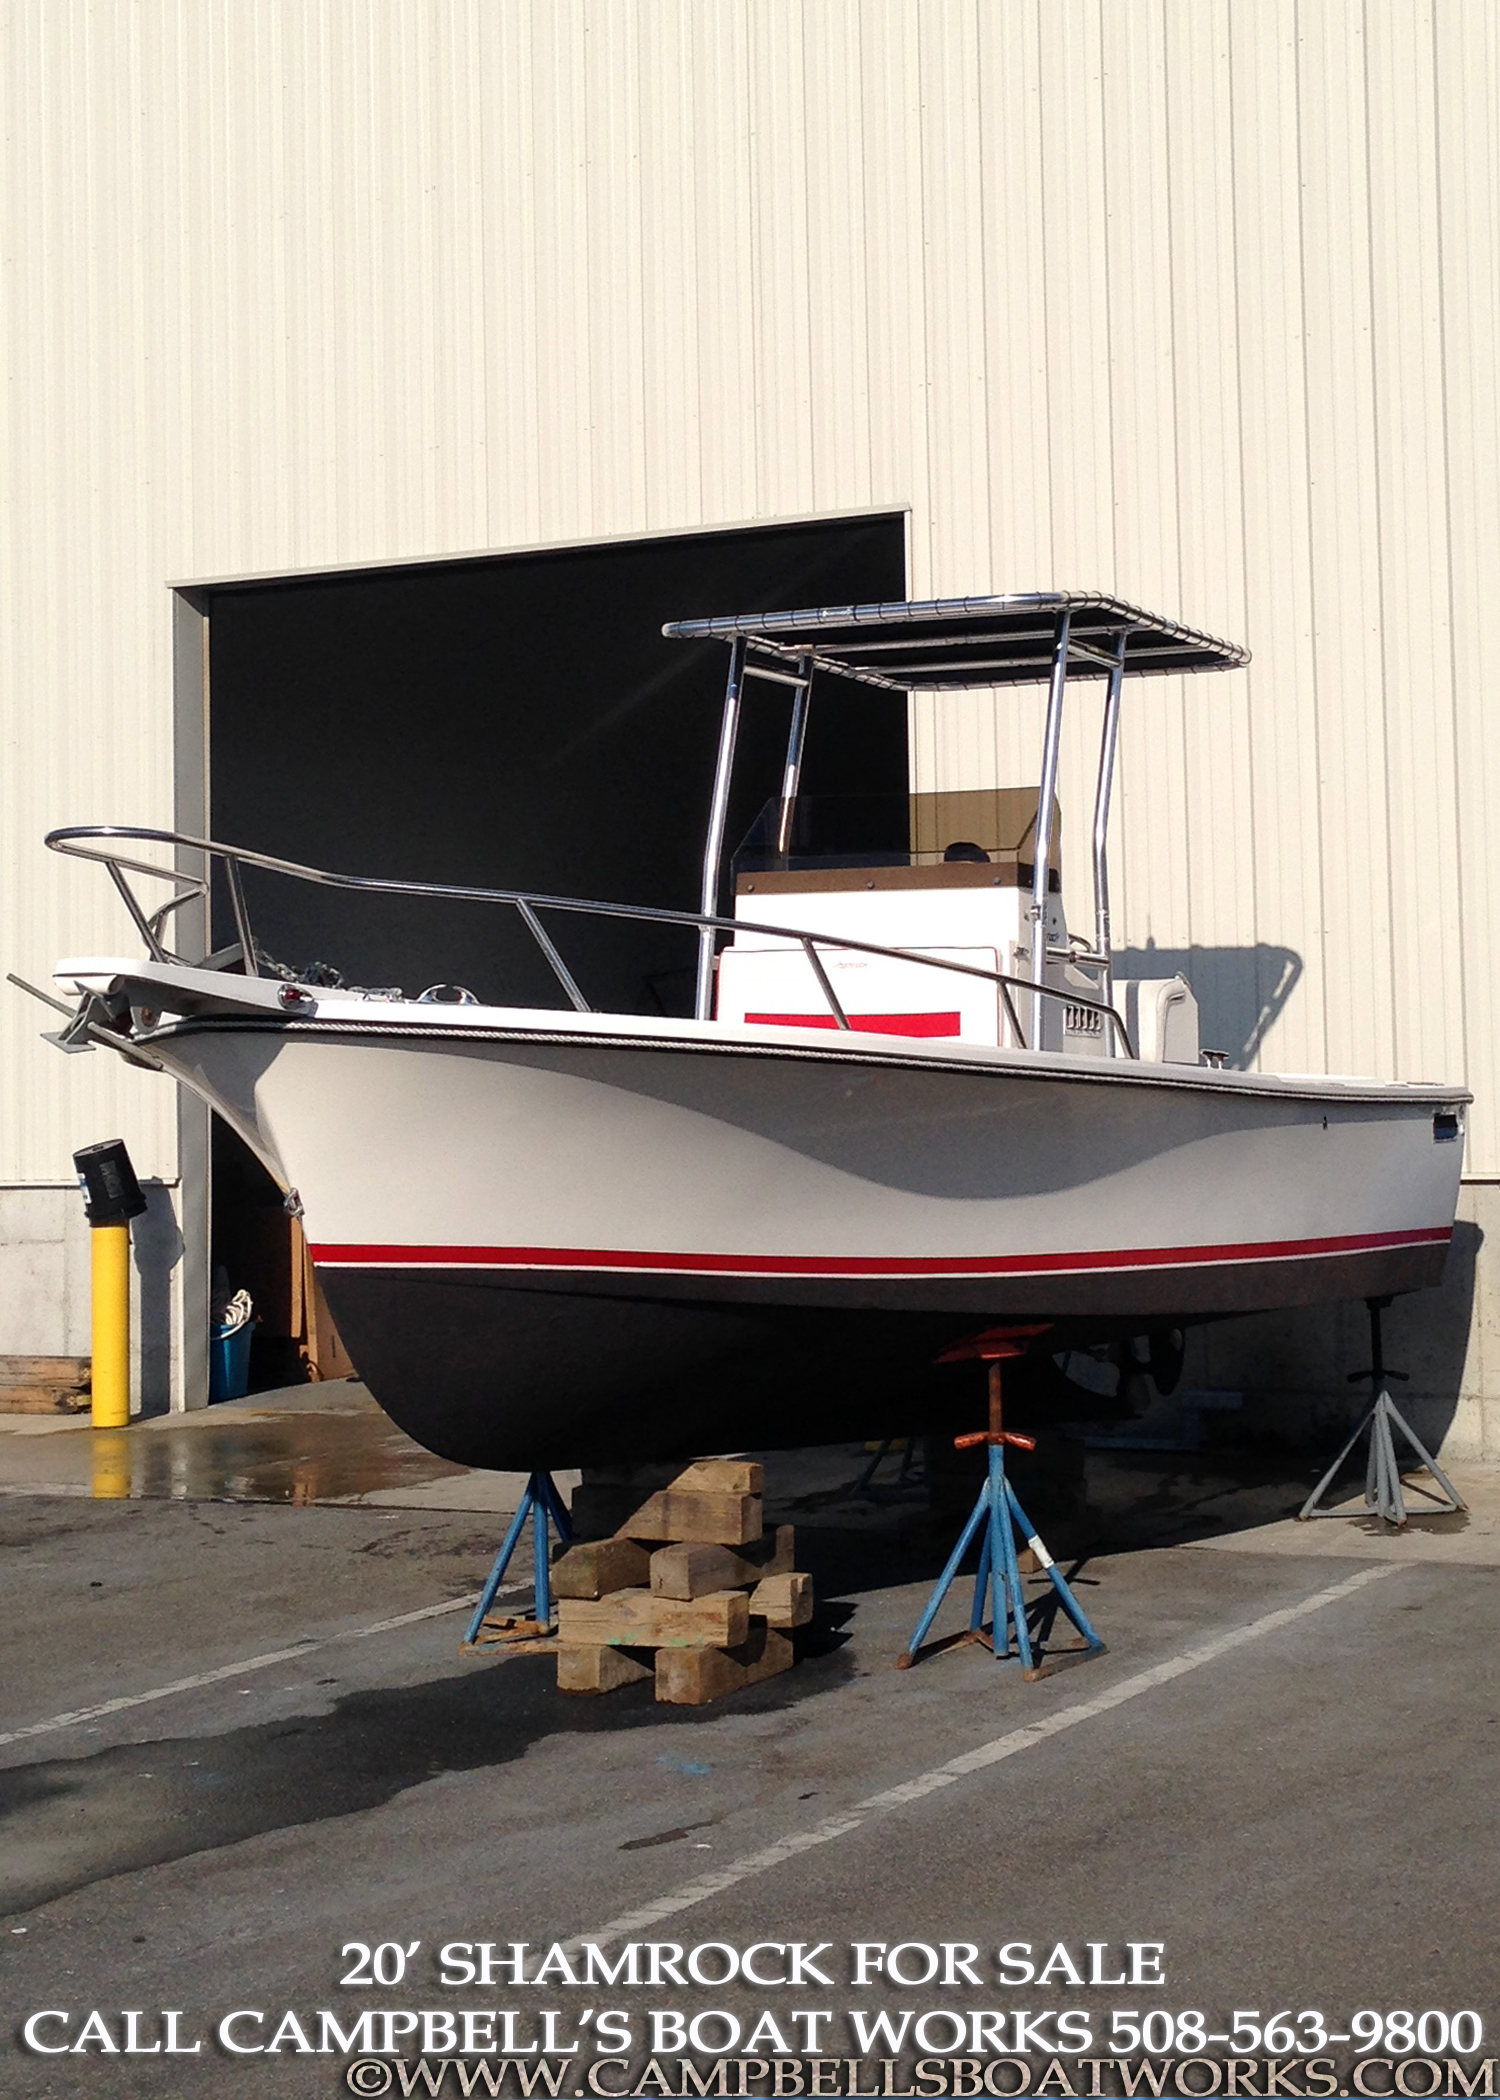 20' Shamrock Center Console Boat For Sale